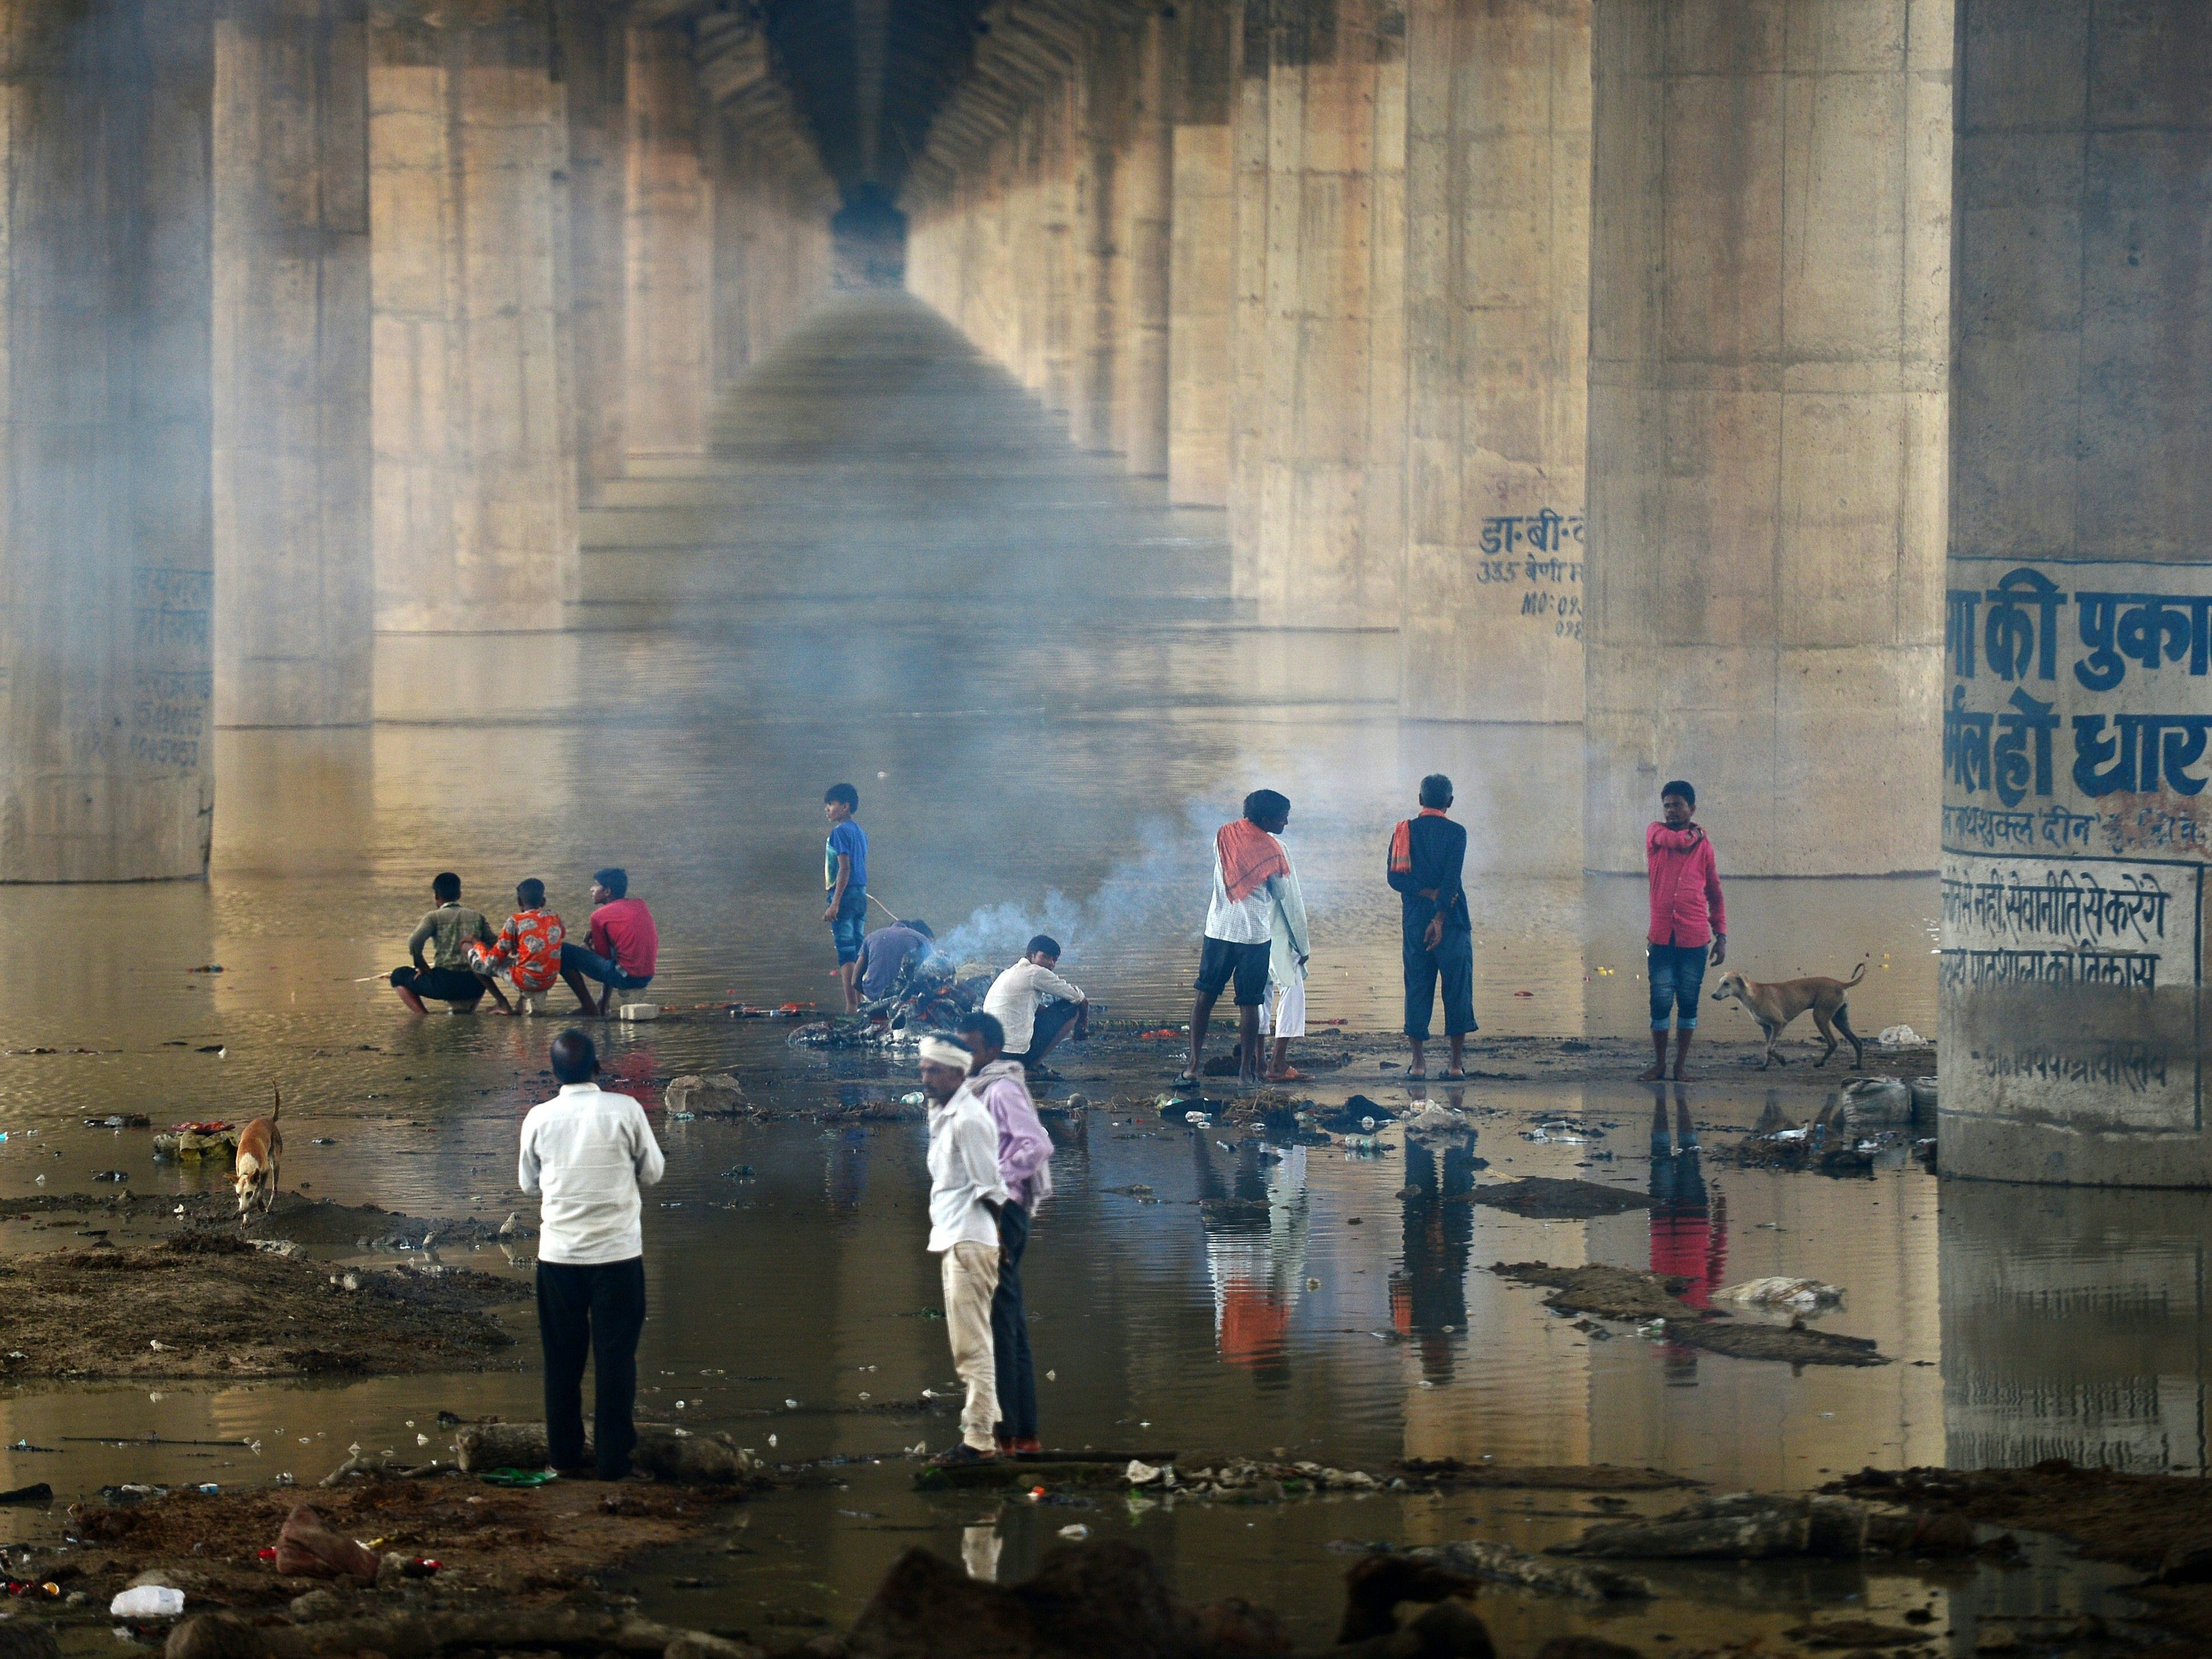 Indian people cremate a body near the flooded River Ganges under Shastri bridge at Daraganj ghat, in Allahabad on September 3, 2018, as water levels of the Ganges and Yamuna rivers increase following monsoon rains.